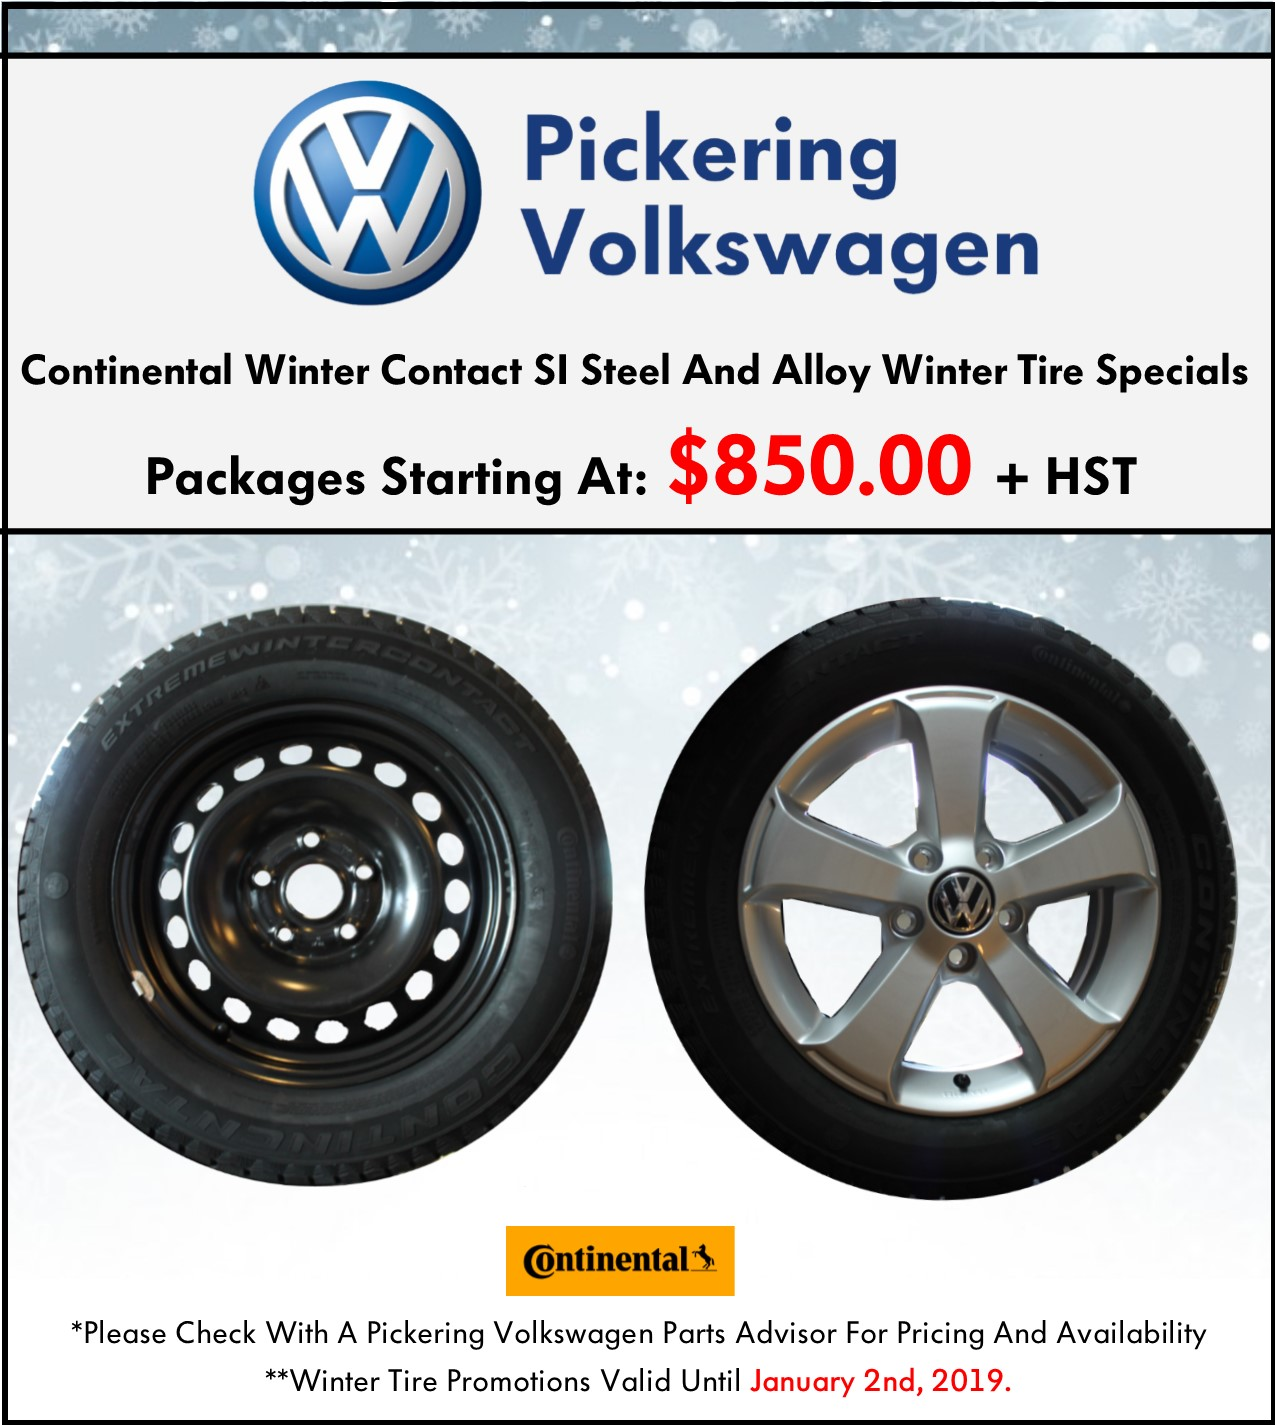 Pickering Volkswagen, Volkswagen Parts Specials, Volkswagen Winter Tires, Volkswagen Snow Tires, Volkswagen Continental Tires, Continental Winter Tires, Volkswagen Winter Season, Steel Winter Tires, Alloy Winter Tires, Volkswagen Accessories, Volkswagen Parts Department, Volkswagen Parts Pickering, 905-420-9700, parts@pvw.com